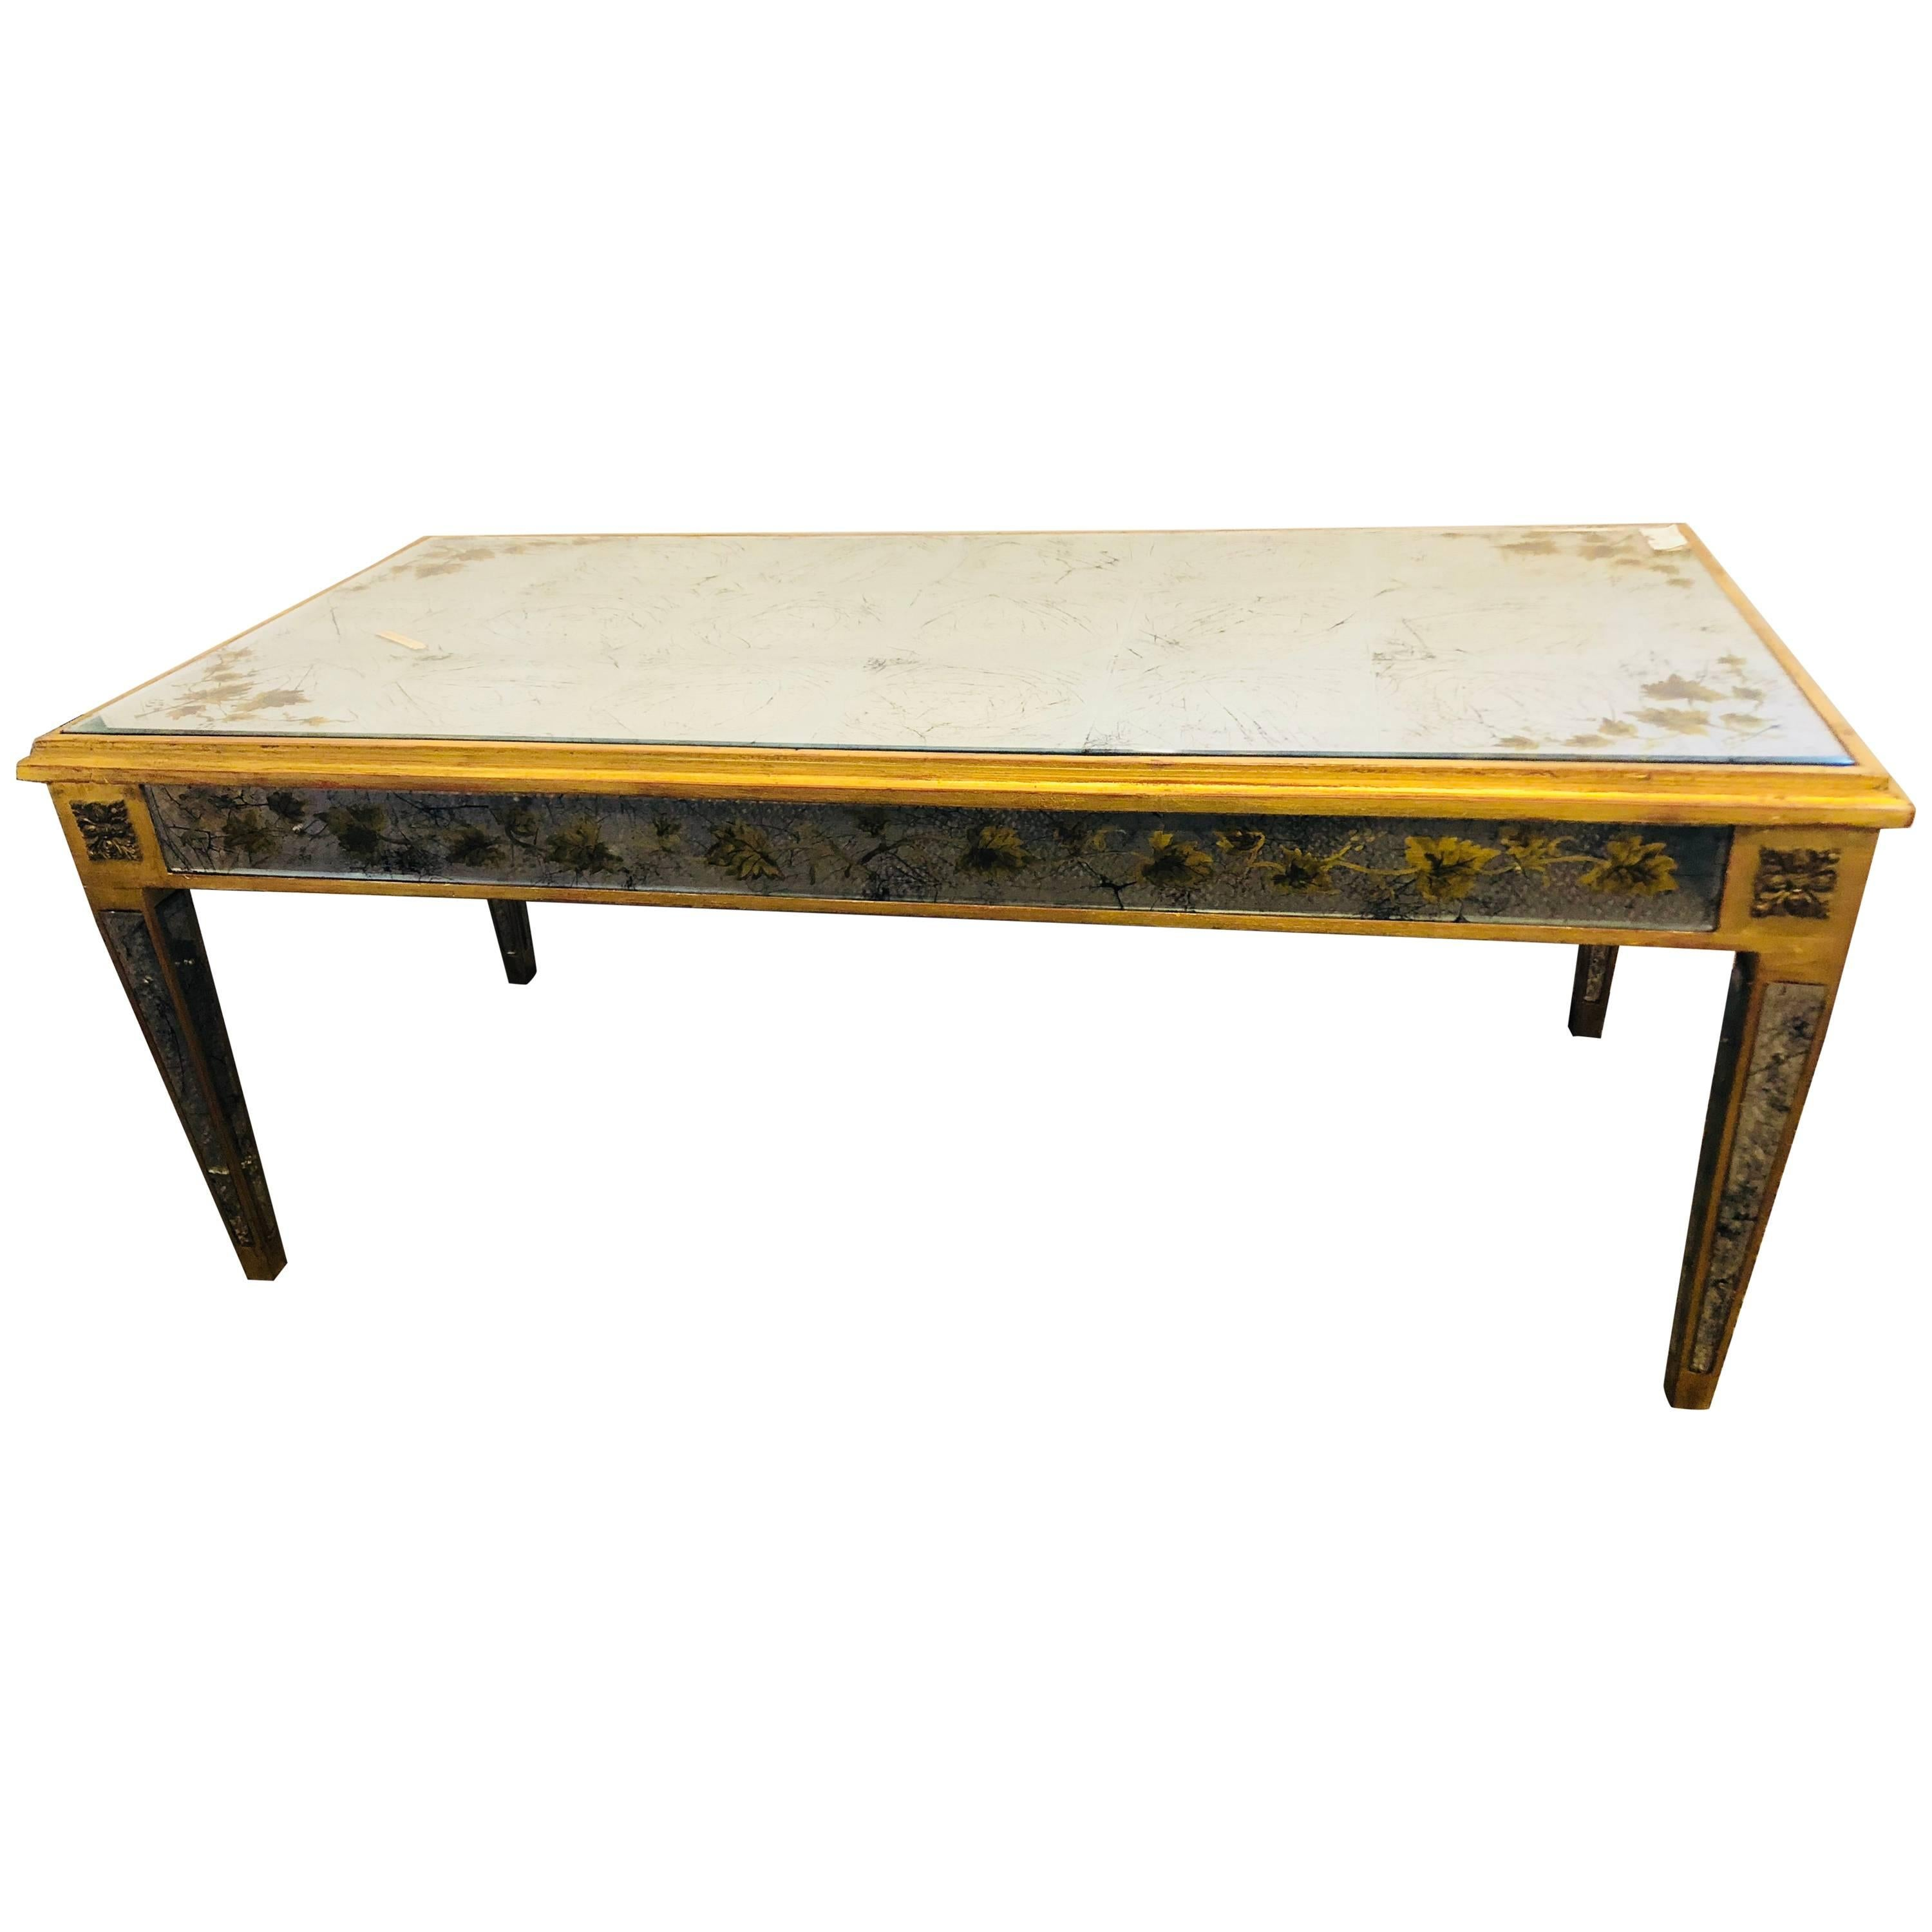 Antique and Vintage Coffee and Cocktail Tables 14665 For Sale